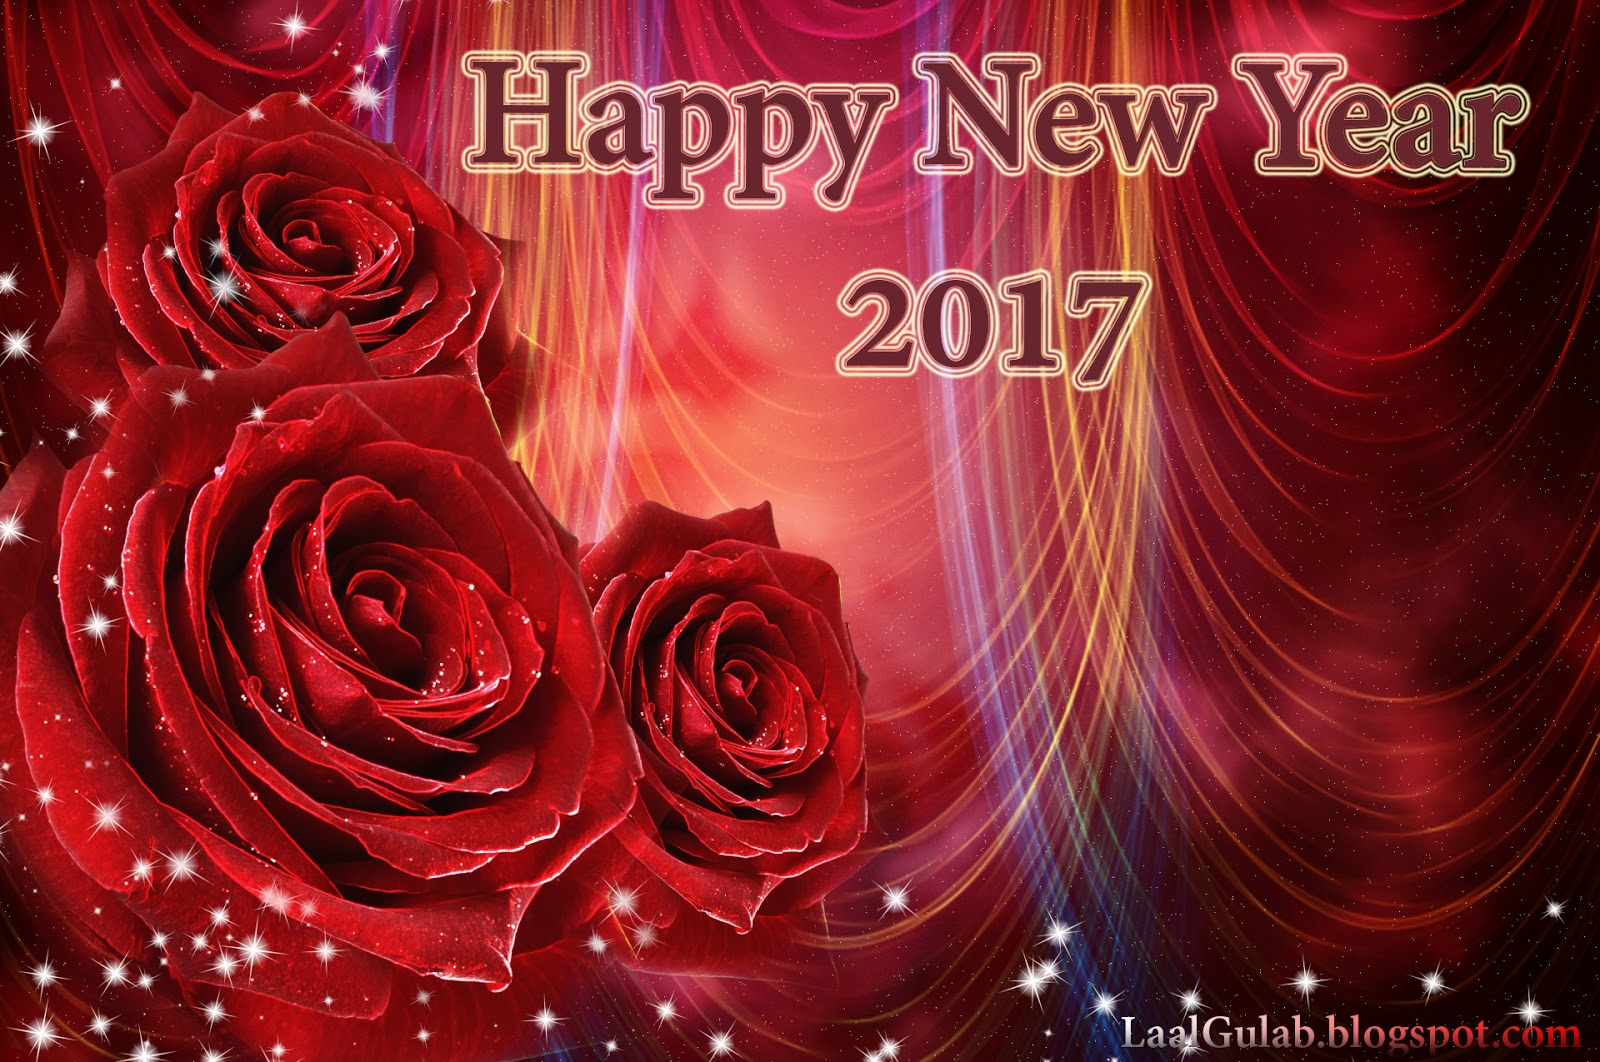 happy new year 2017 wallpapers happy new year 2017 images